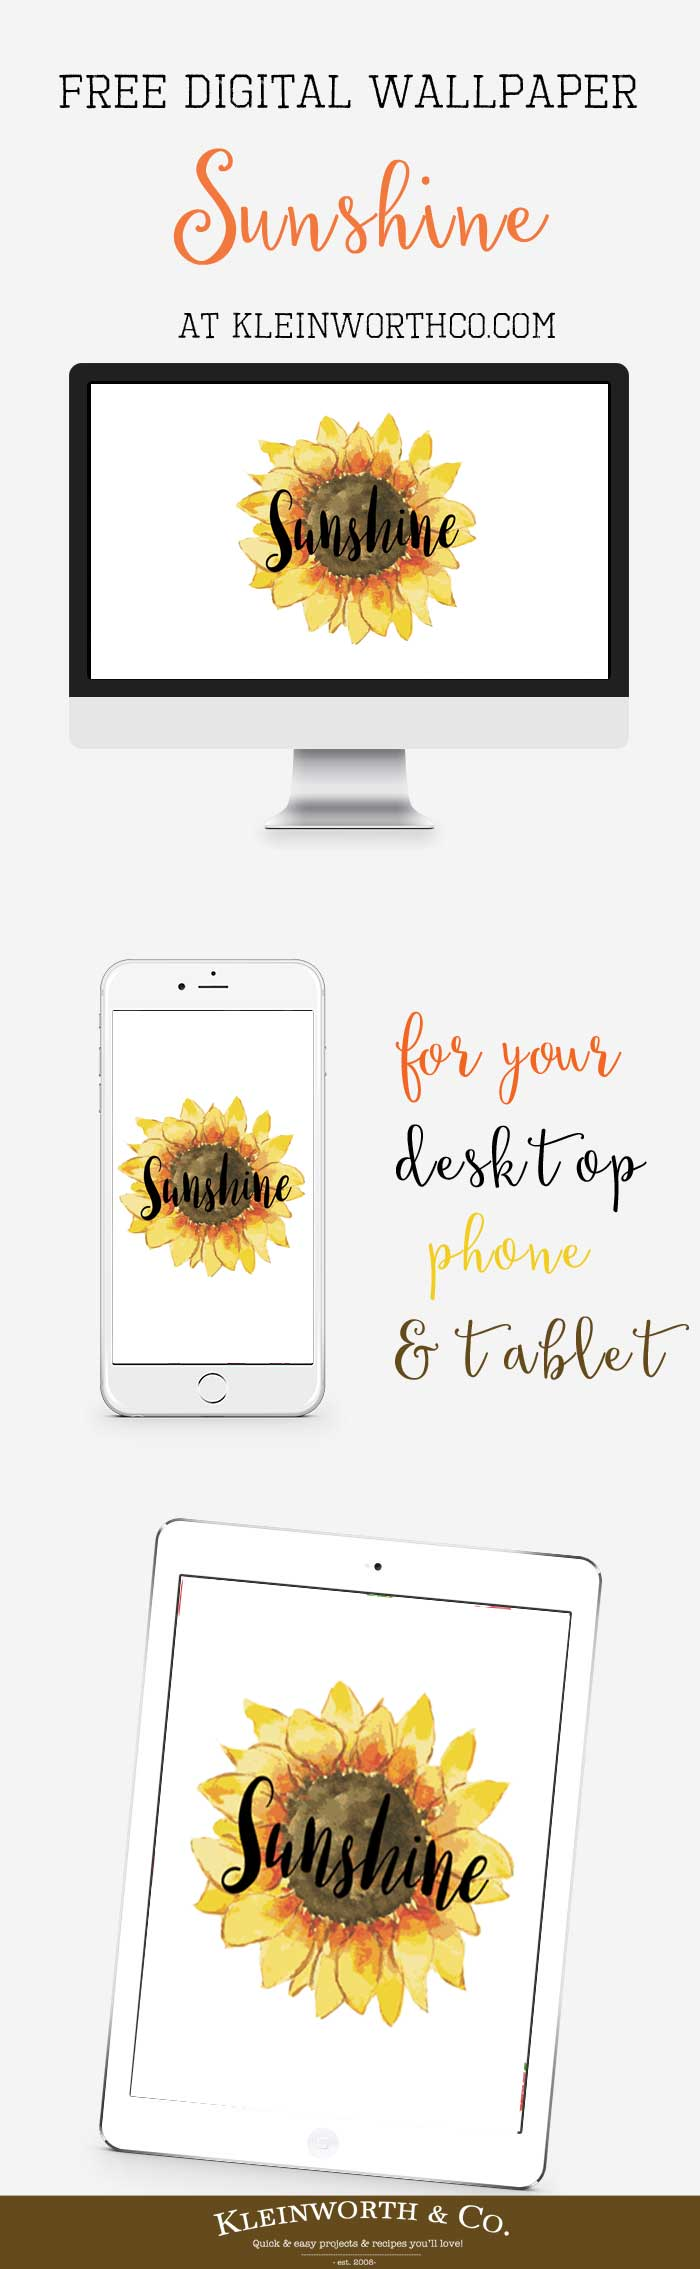 Sunshine Free Digital Wallpaper